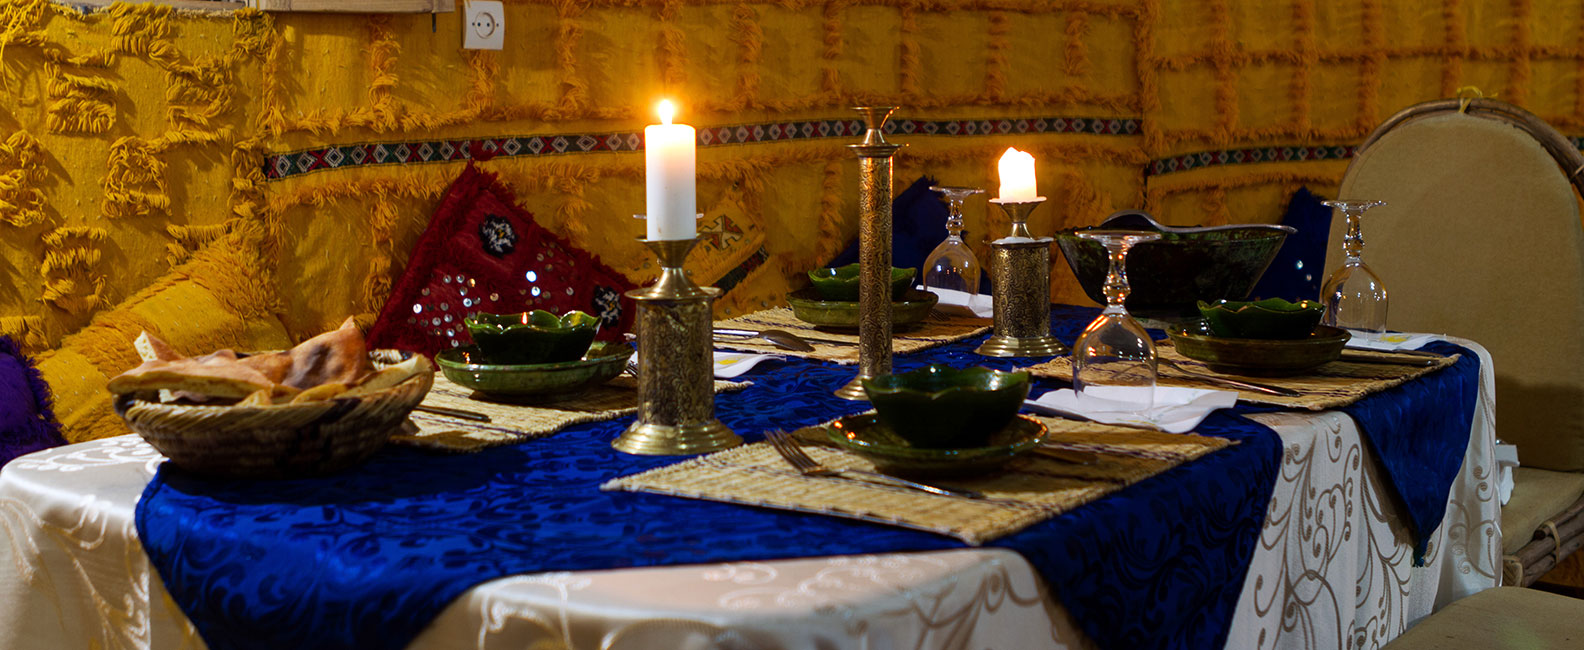 morocco-restaurant-food